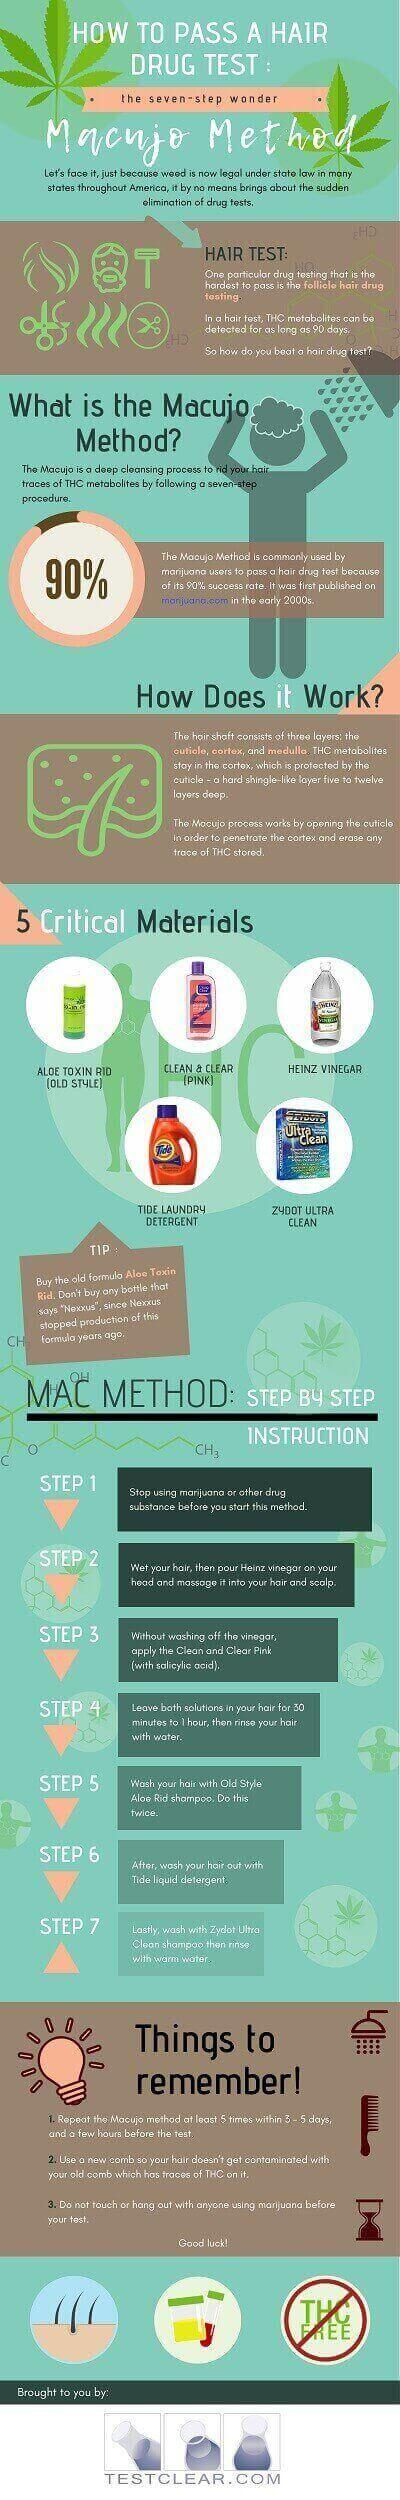 Macujo Method Infographic How to Pass a Hair Drug Test